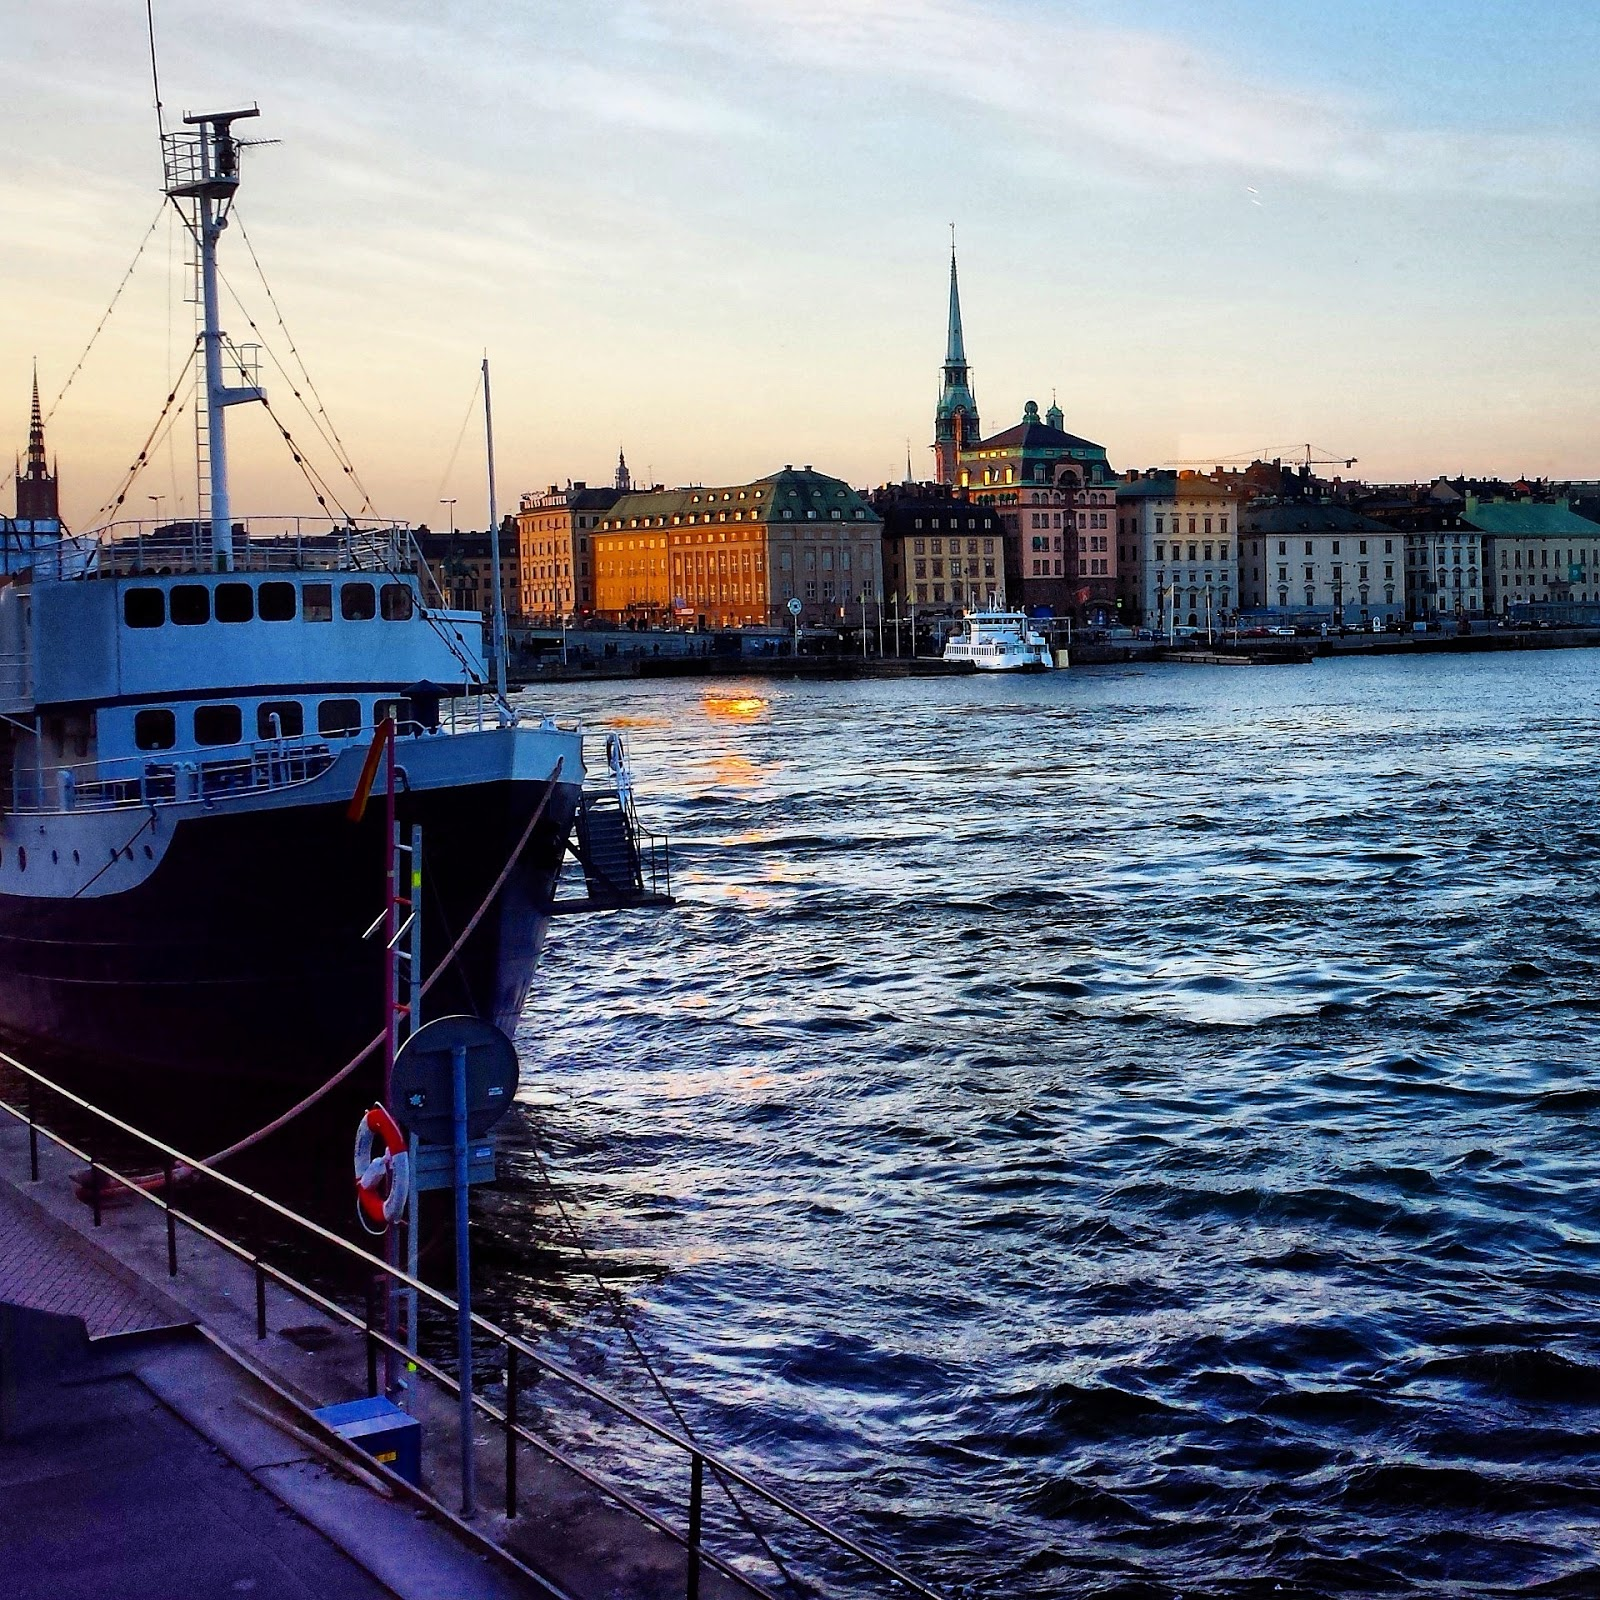 Stadsgårdsleden and view of Gamla Stan, Stockholm  |  A pre-emptive unwinding at sea on afeathery*nest  |  afeatherynest.com